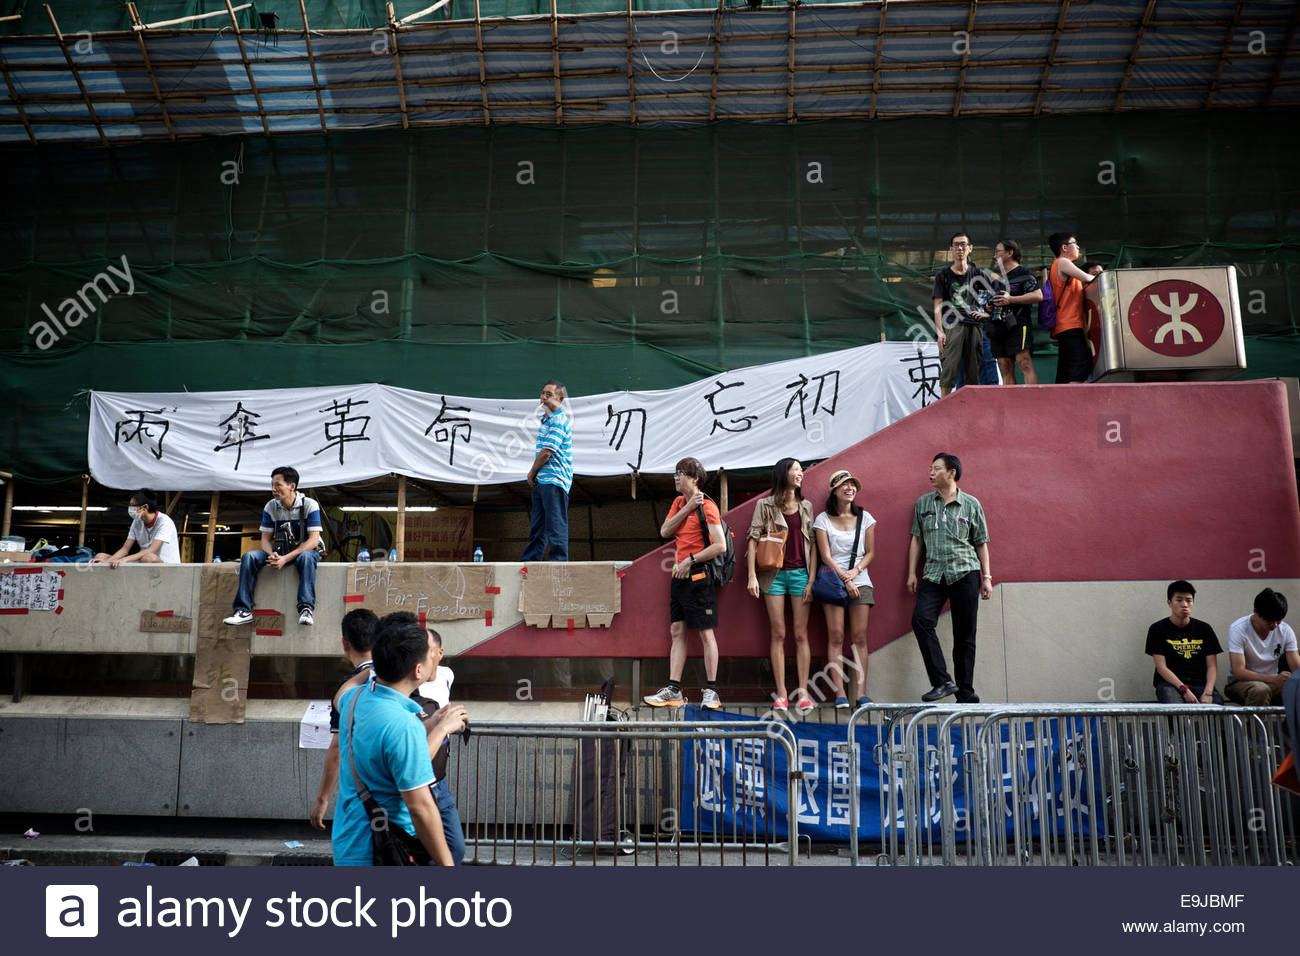 Sign reads - 'Umbrella revolution, don't forget what we were here for in the first place'. - Stock Image